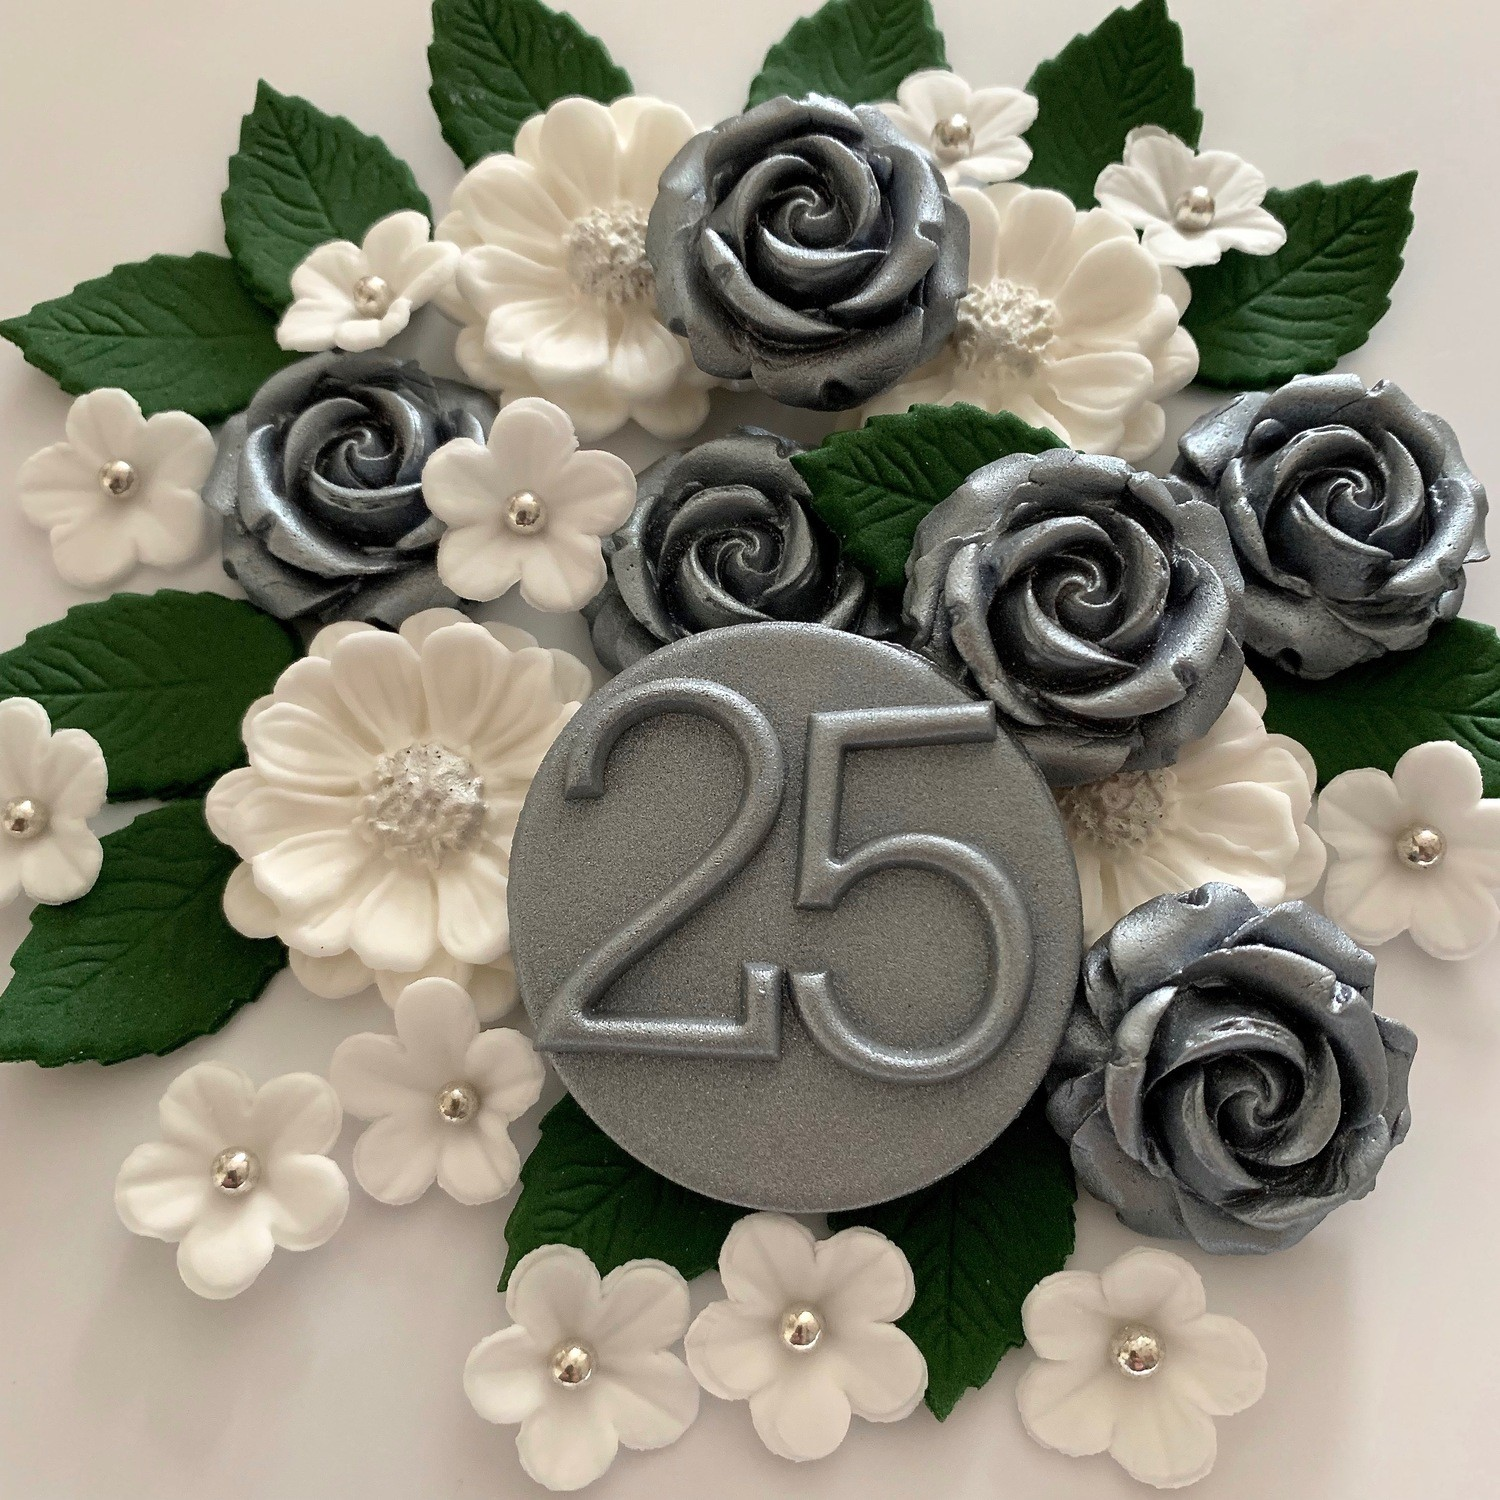 Silver Wedding Anniversary Rose Bouquet